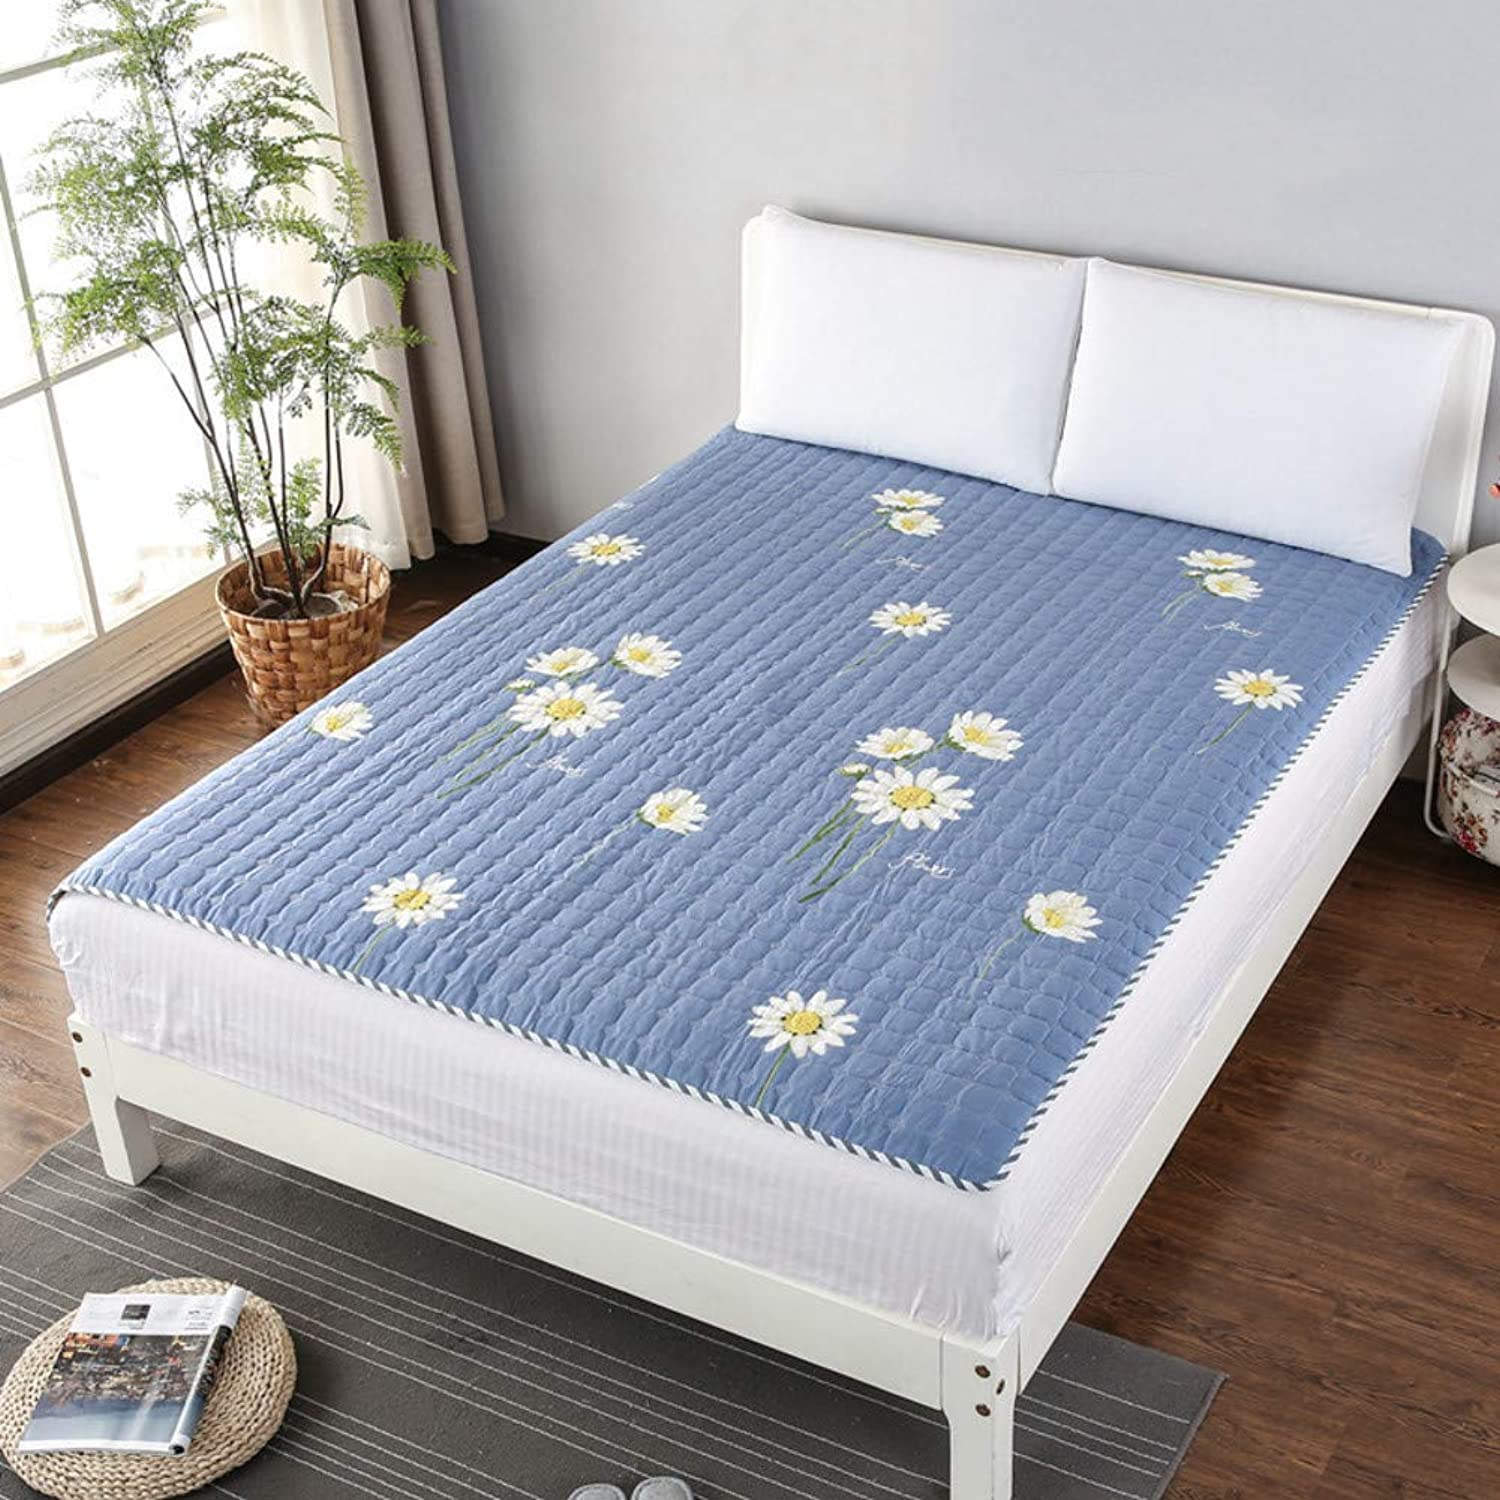 Cotton Breathable Mattress pad,Soft Non-Slip Portable Quilted Tatami Cooling Mattress Topper Student Dormitory-V Full 120x200cm(47x79inch)